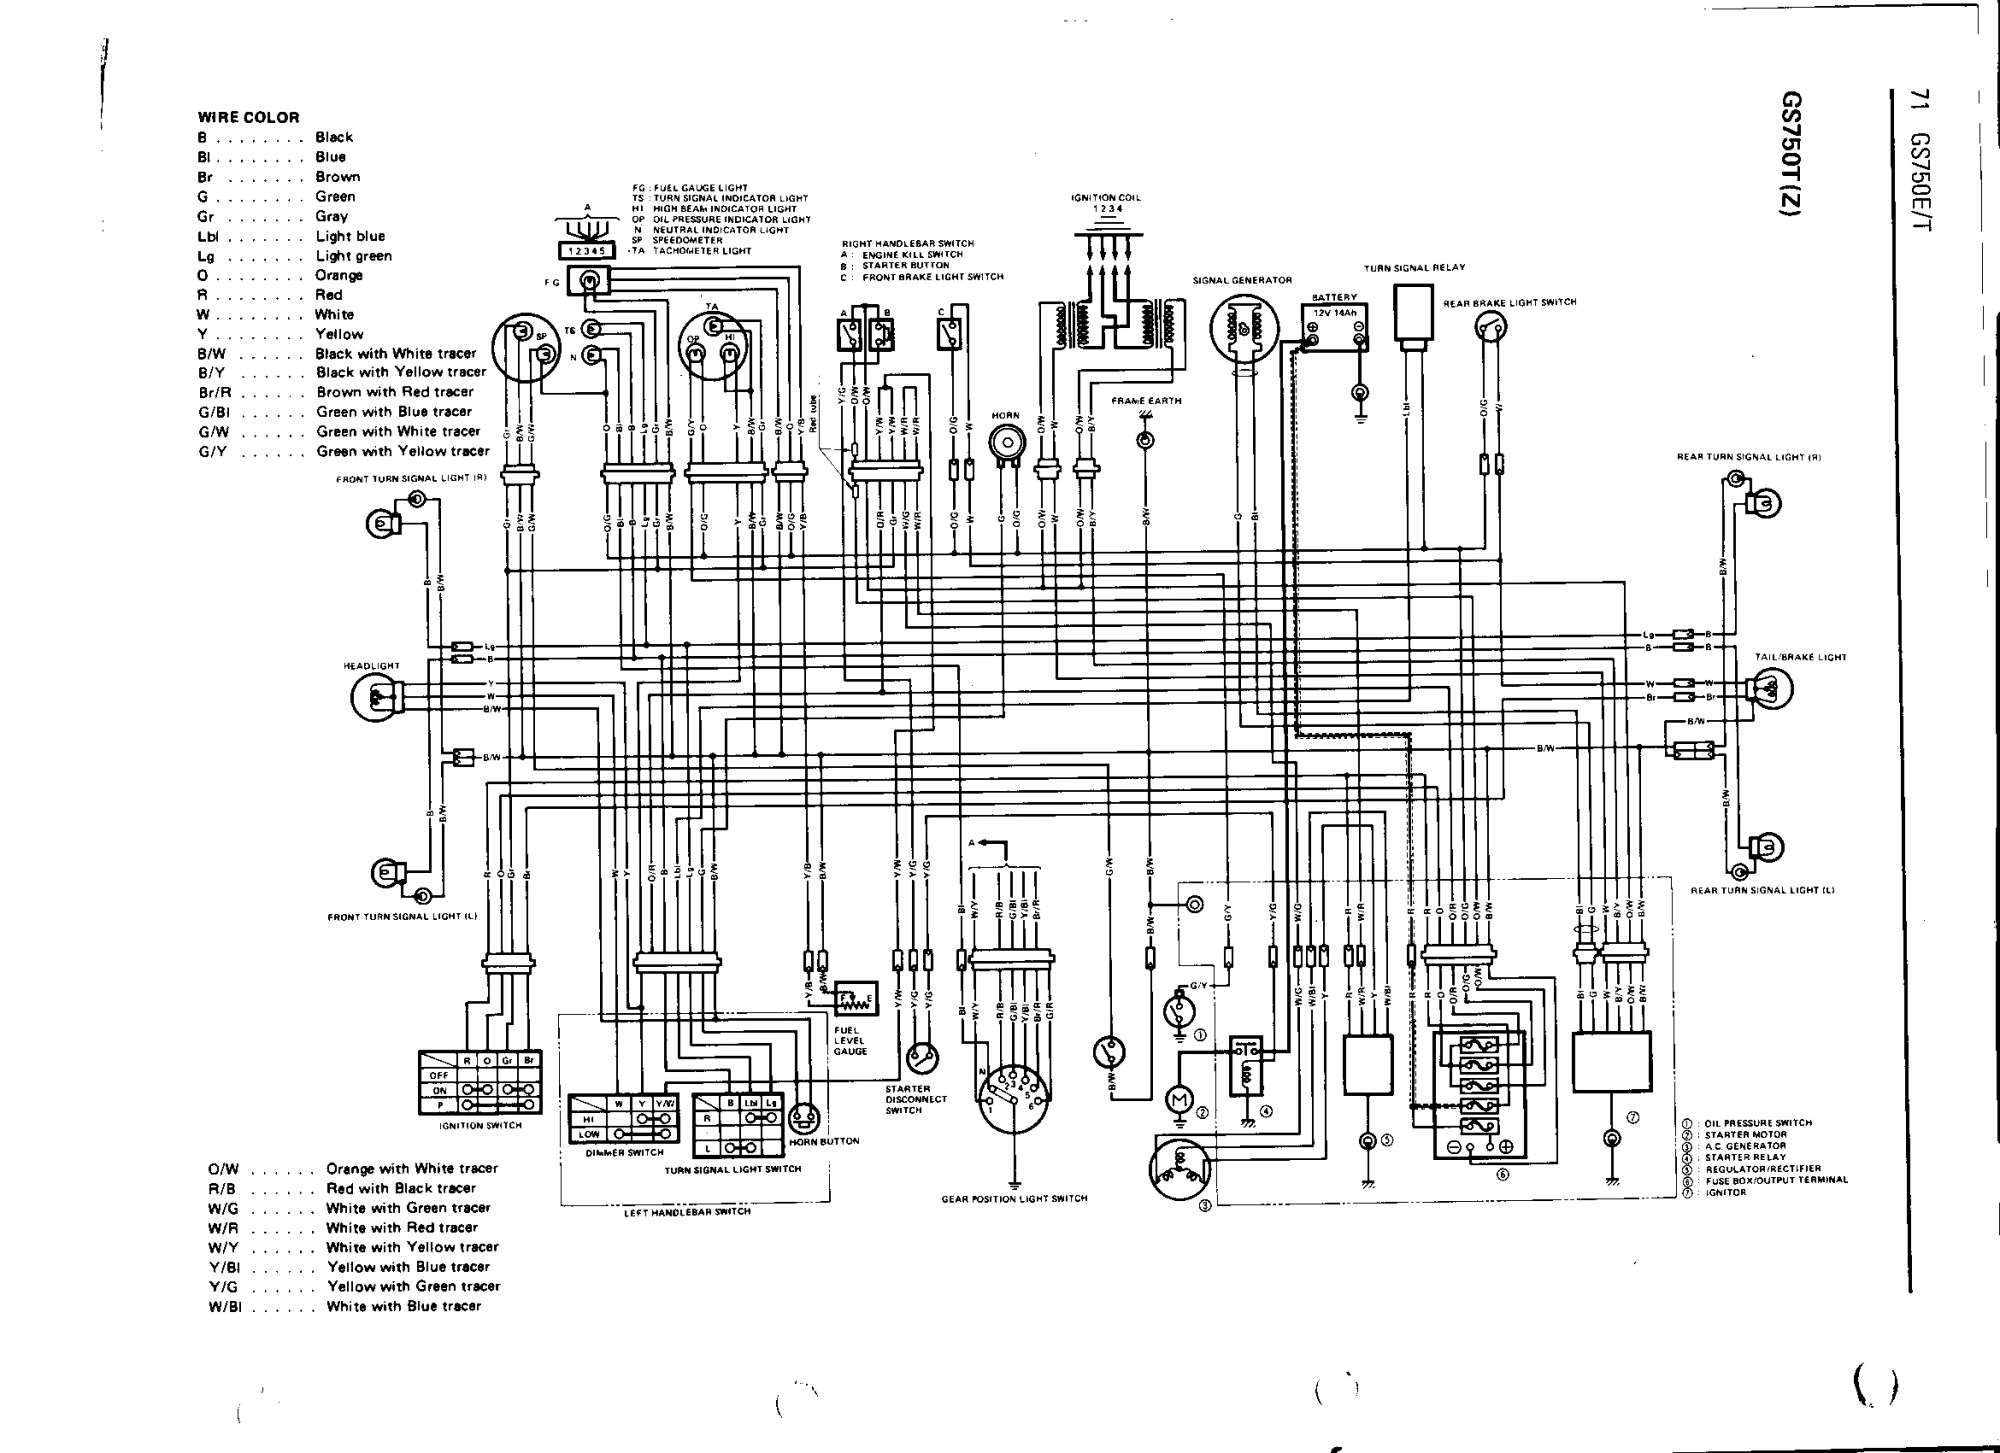 hight resolution of gs750e s z wiring diagram gs750 16 valve color wiring diagram gs850g 80 wiring diagram color gs850gn 79 wiring diagram b w